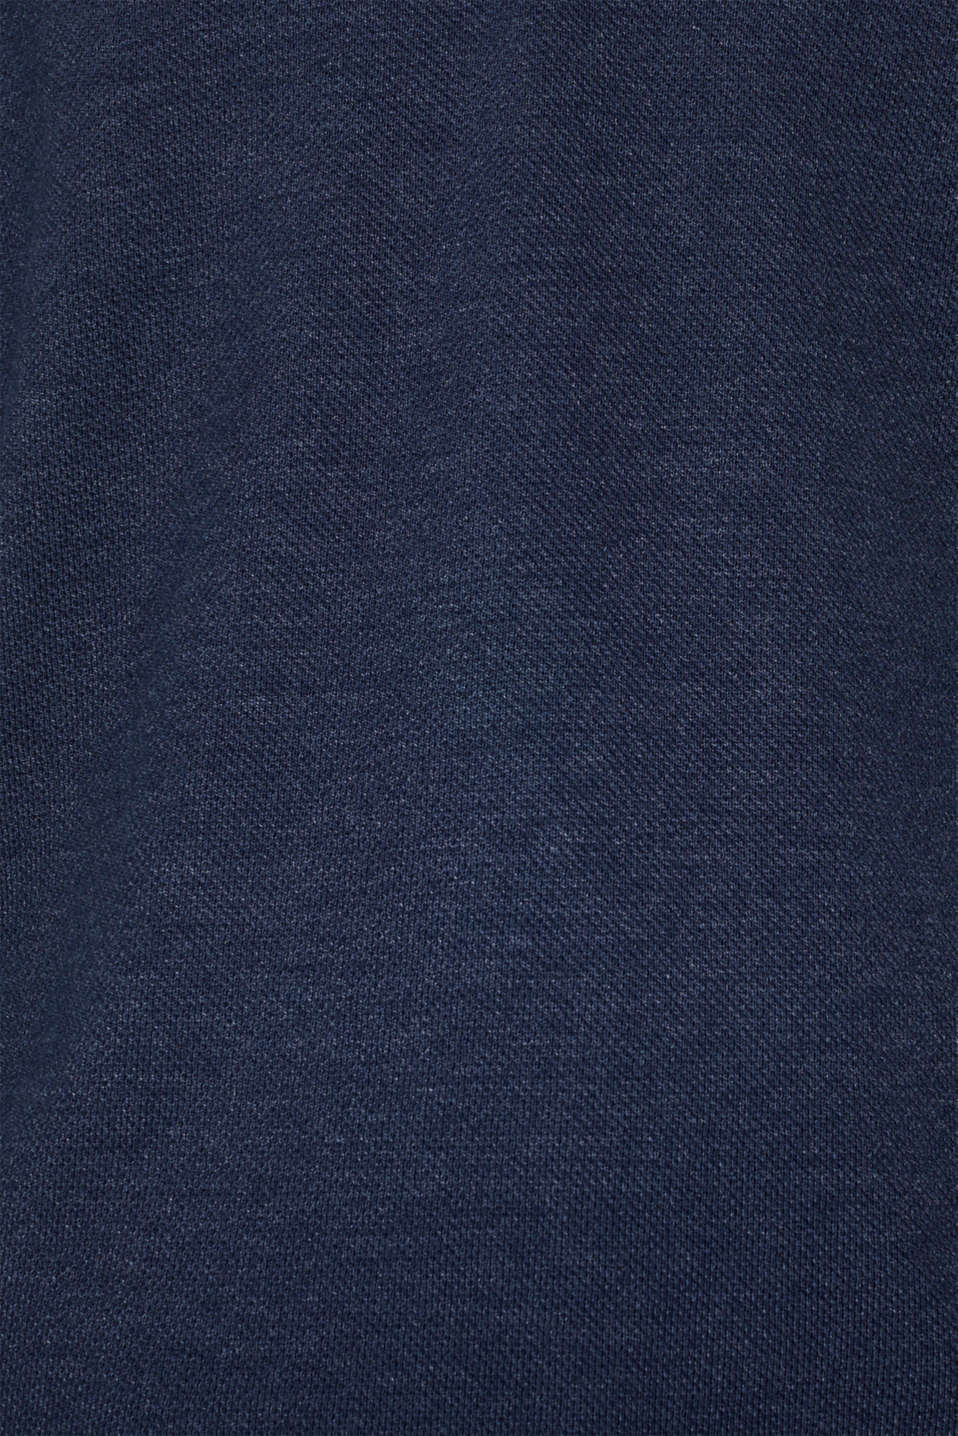 Long sleeve Henley T-shirt made of piqué, NAVY, detail image number 4